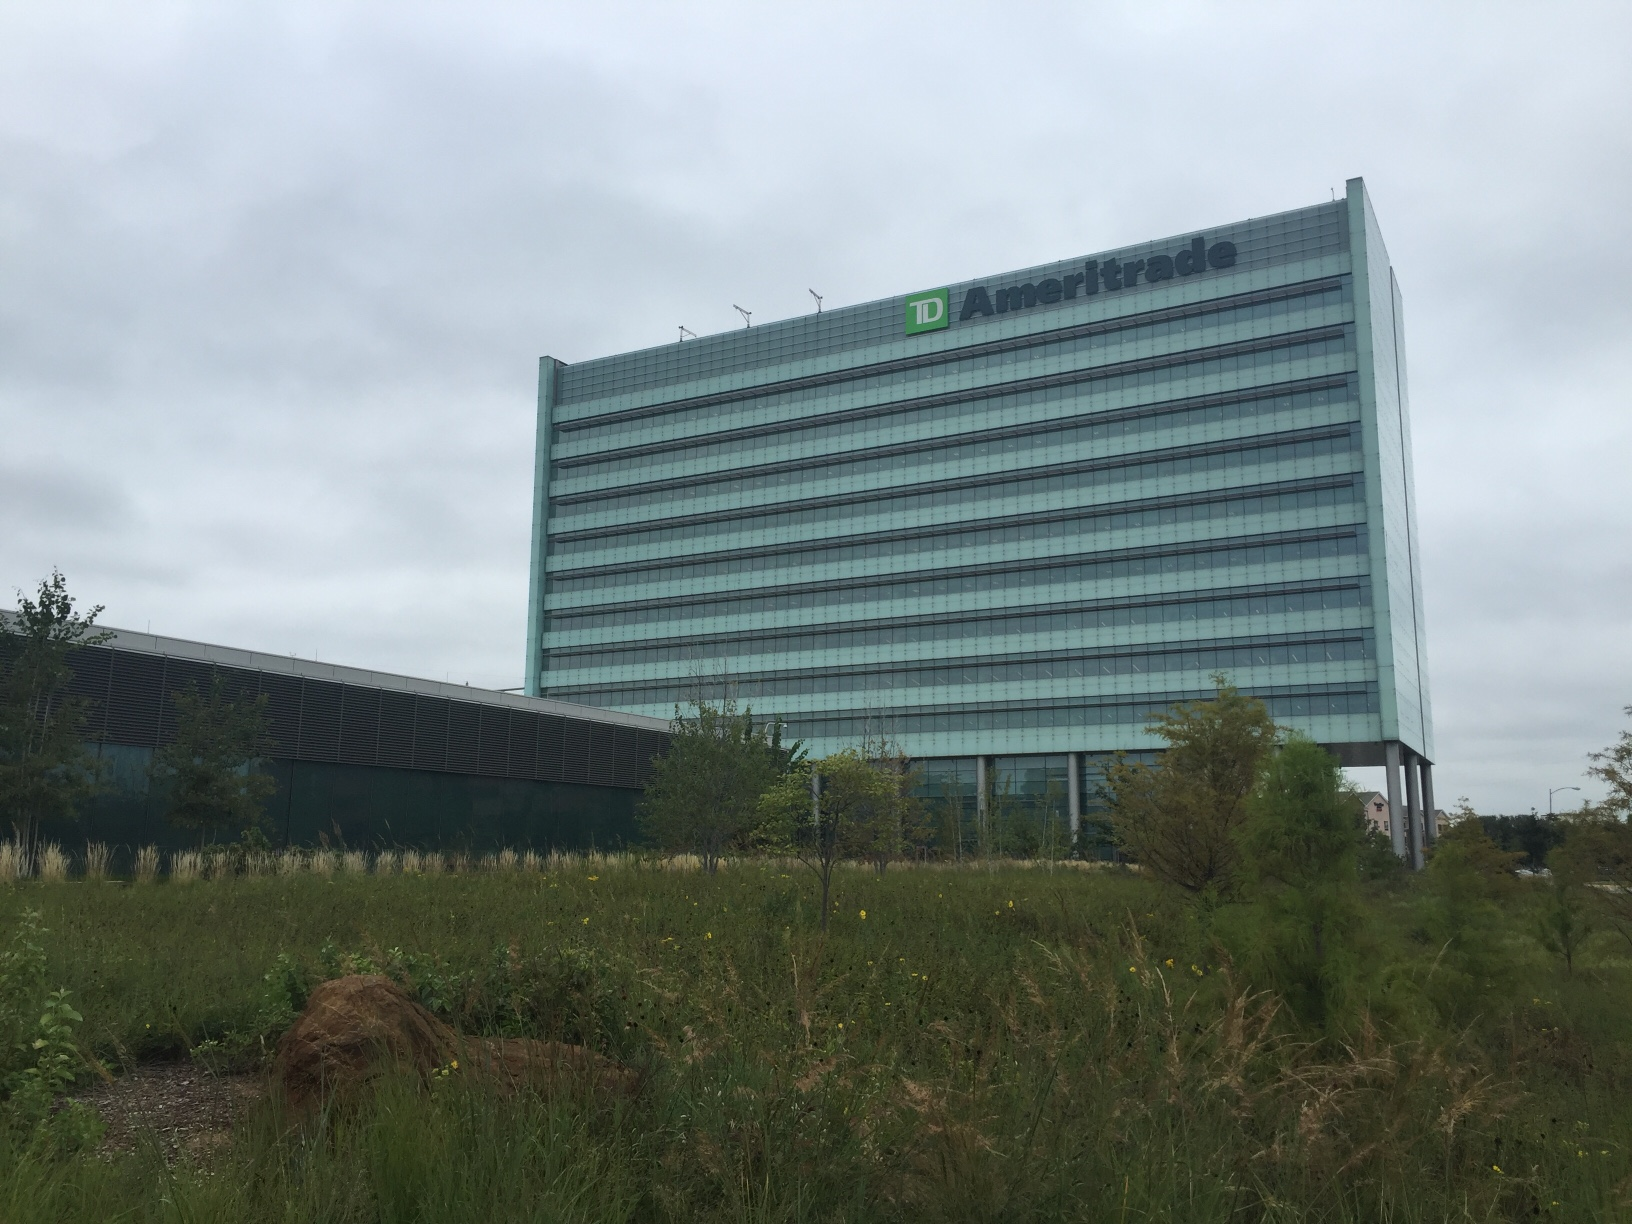 TD Ameritrade's corporate headquarters in Omaha, Nebraska.